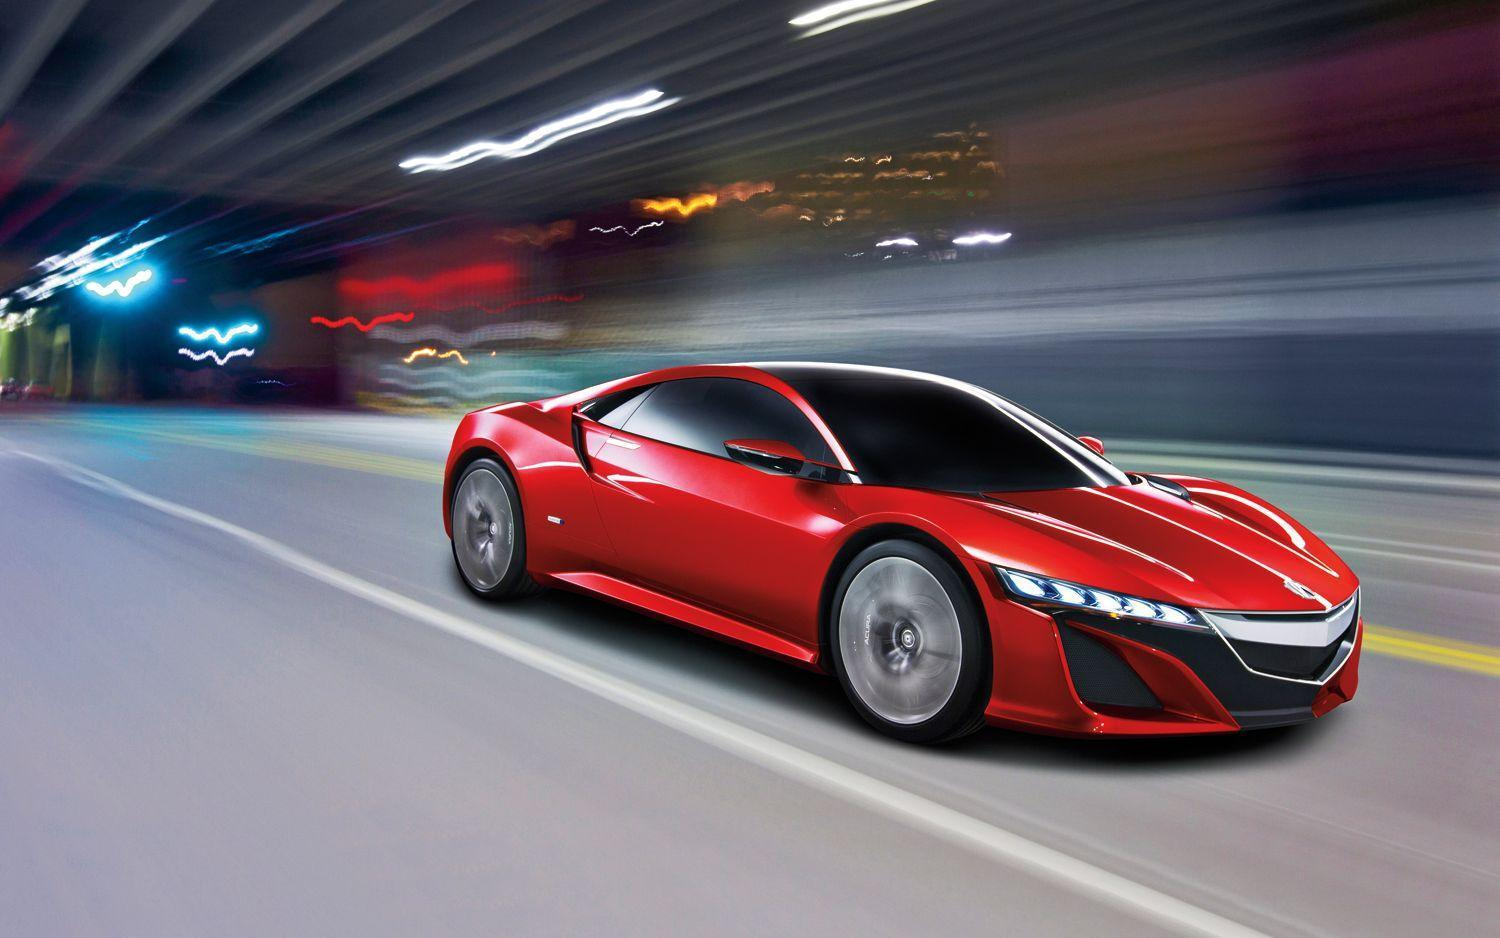 Acura NSX Wallpapers : Get Free top quality Acura NSX Wallpapers ...